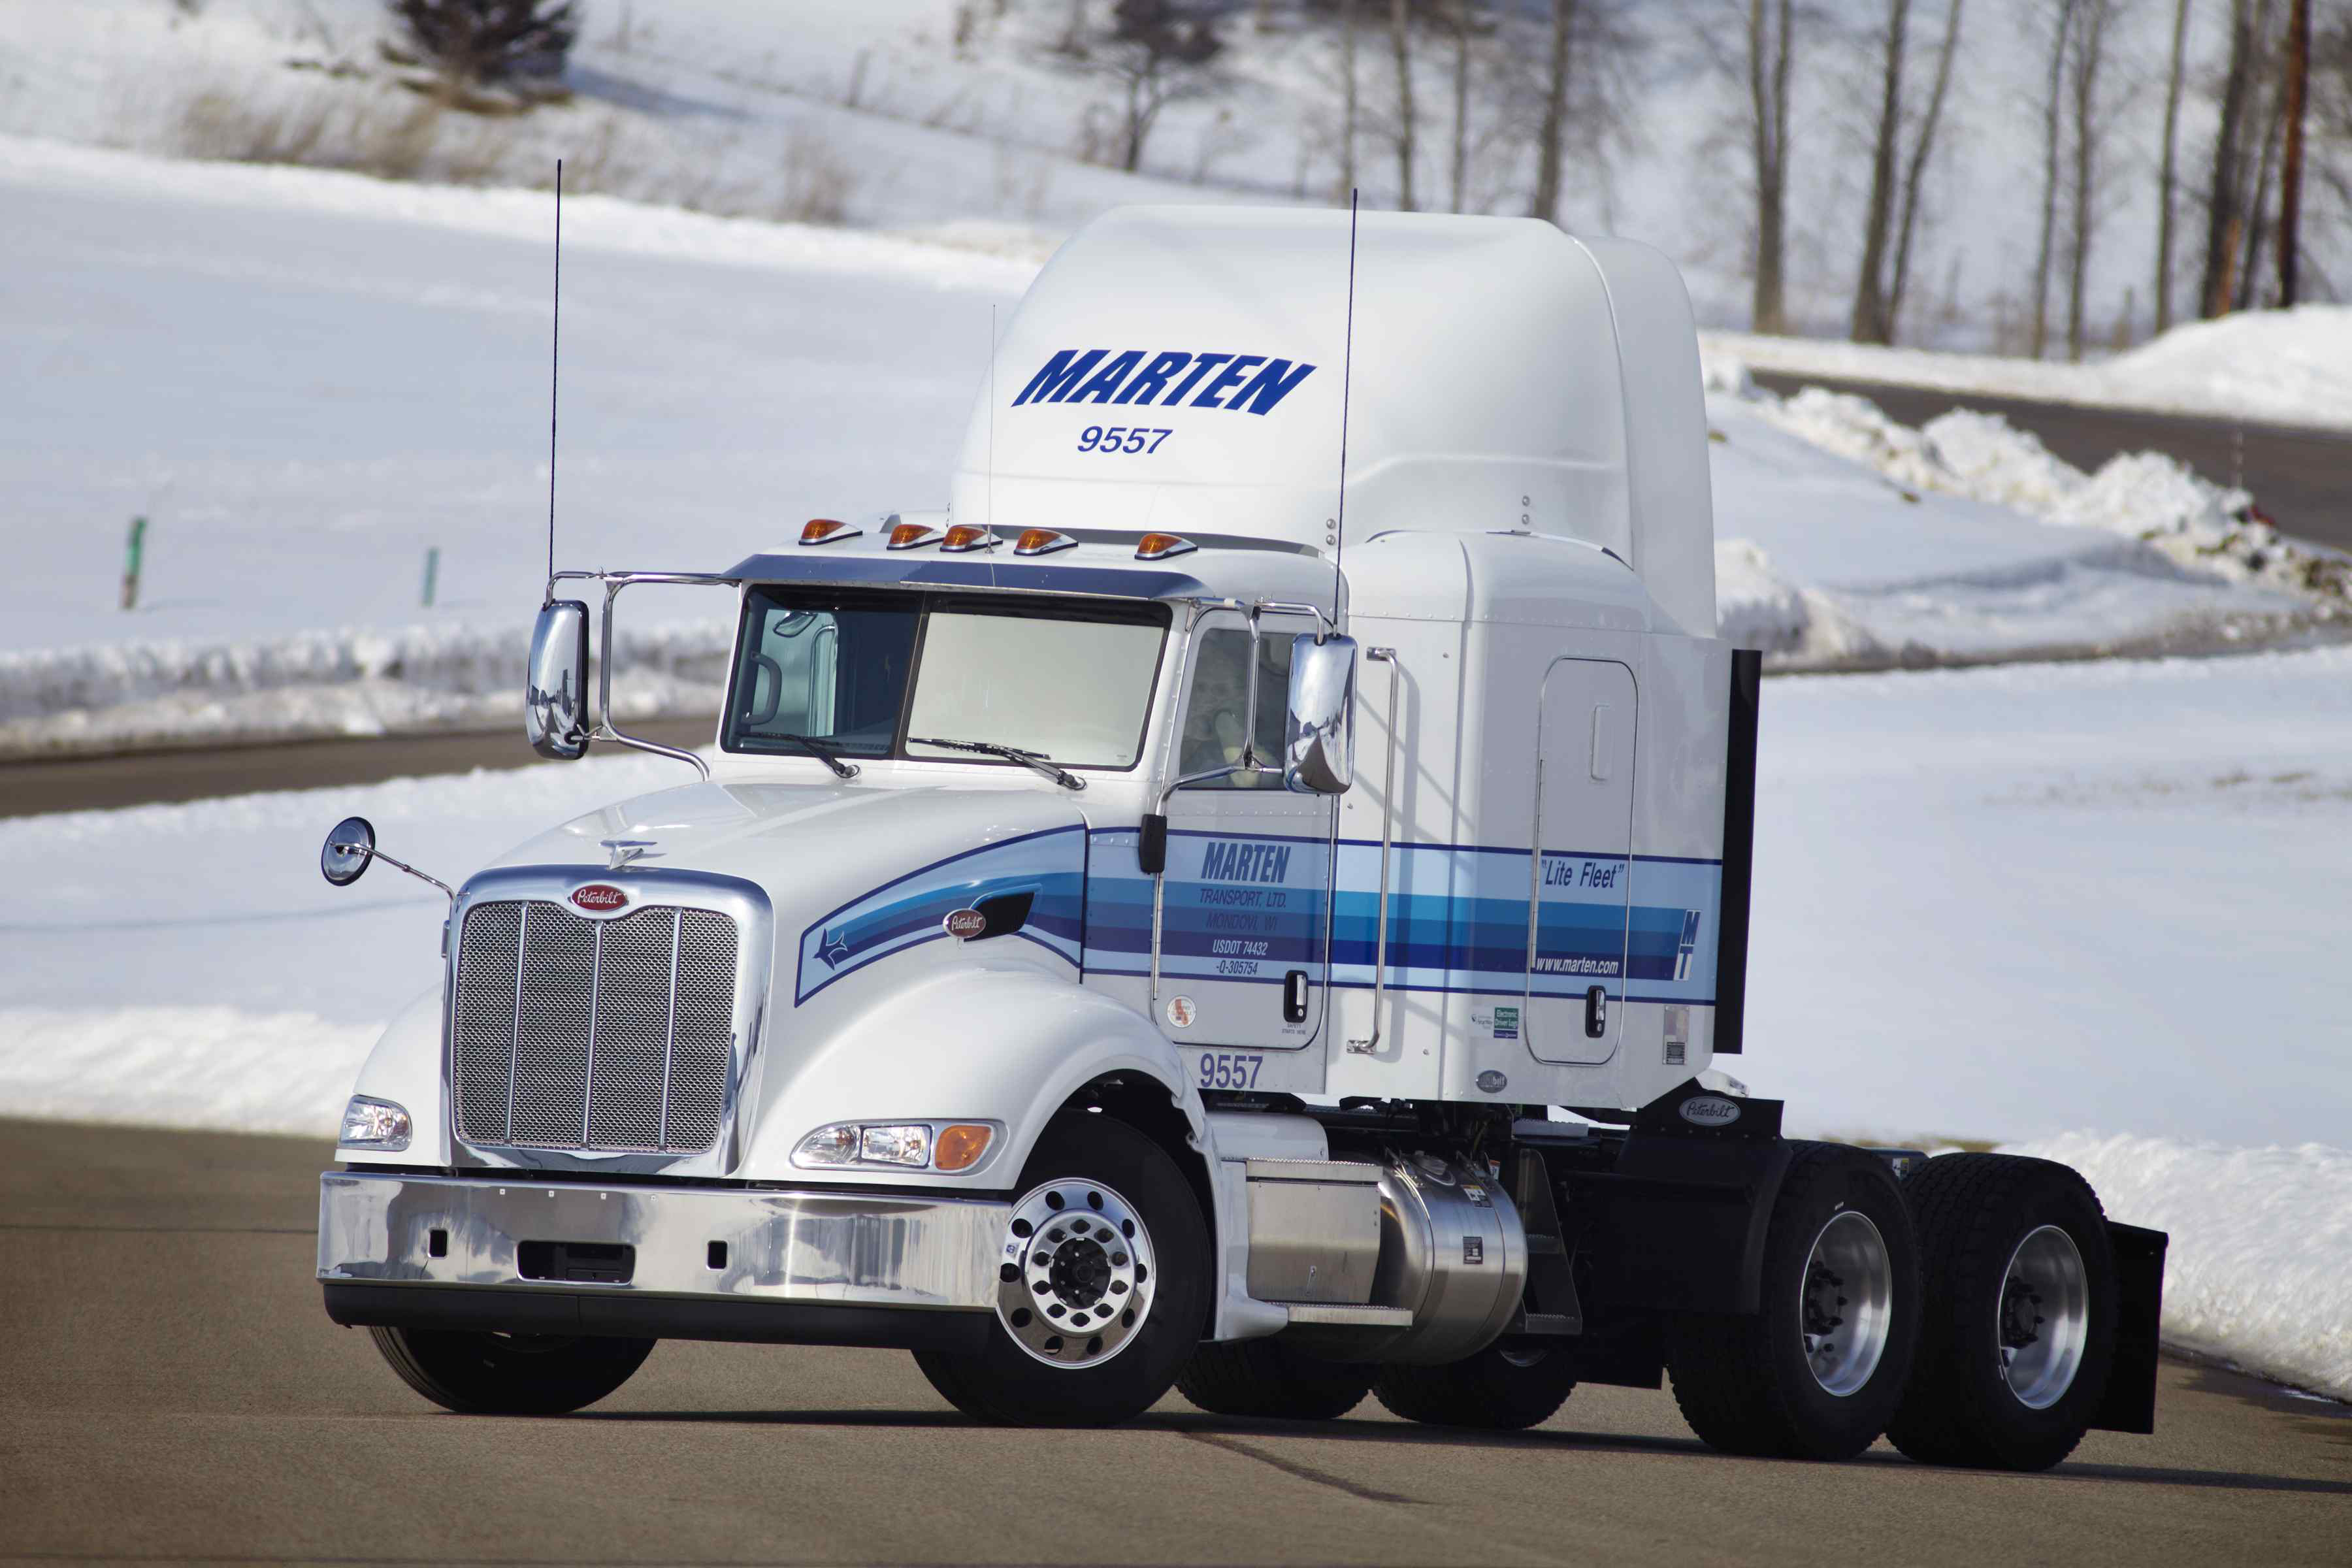 Marten ordered to pay former driver $51k after firing him for refusing overweight load